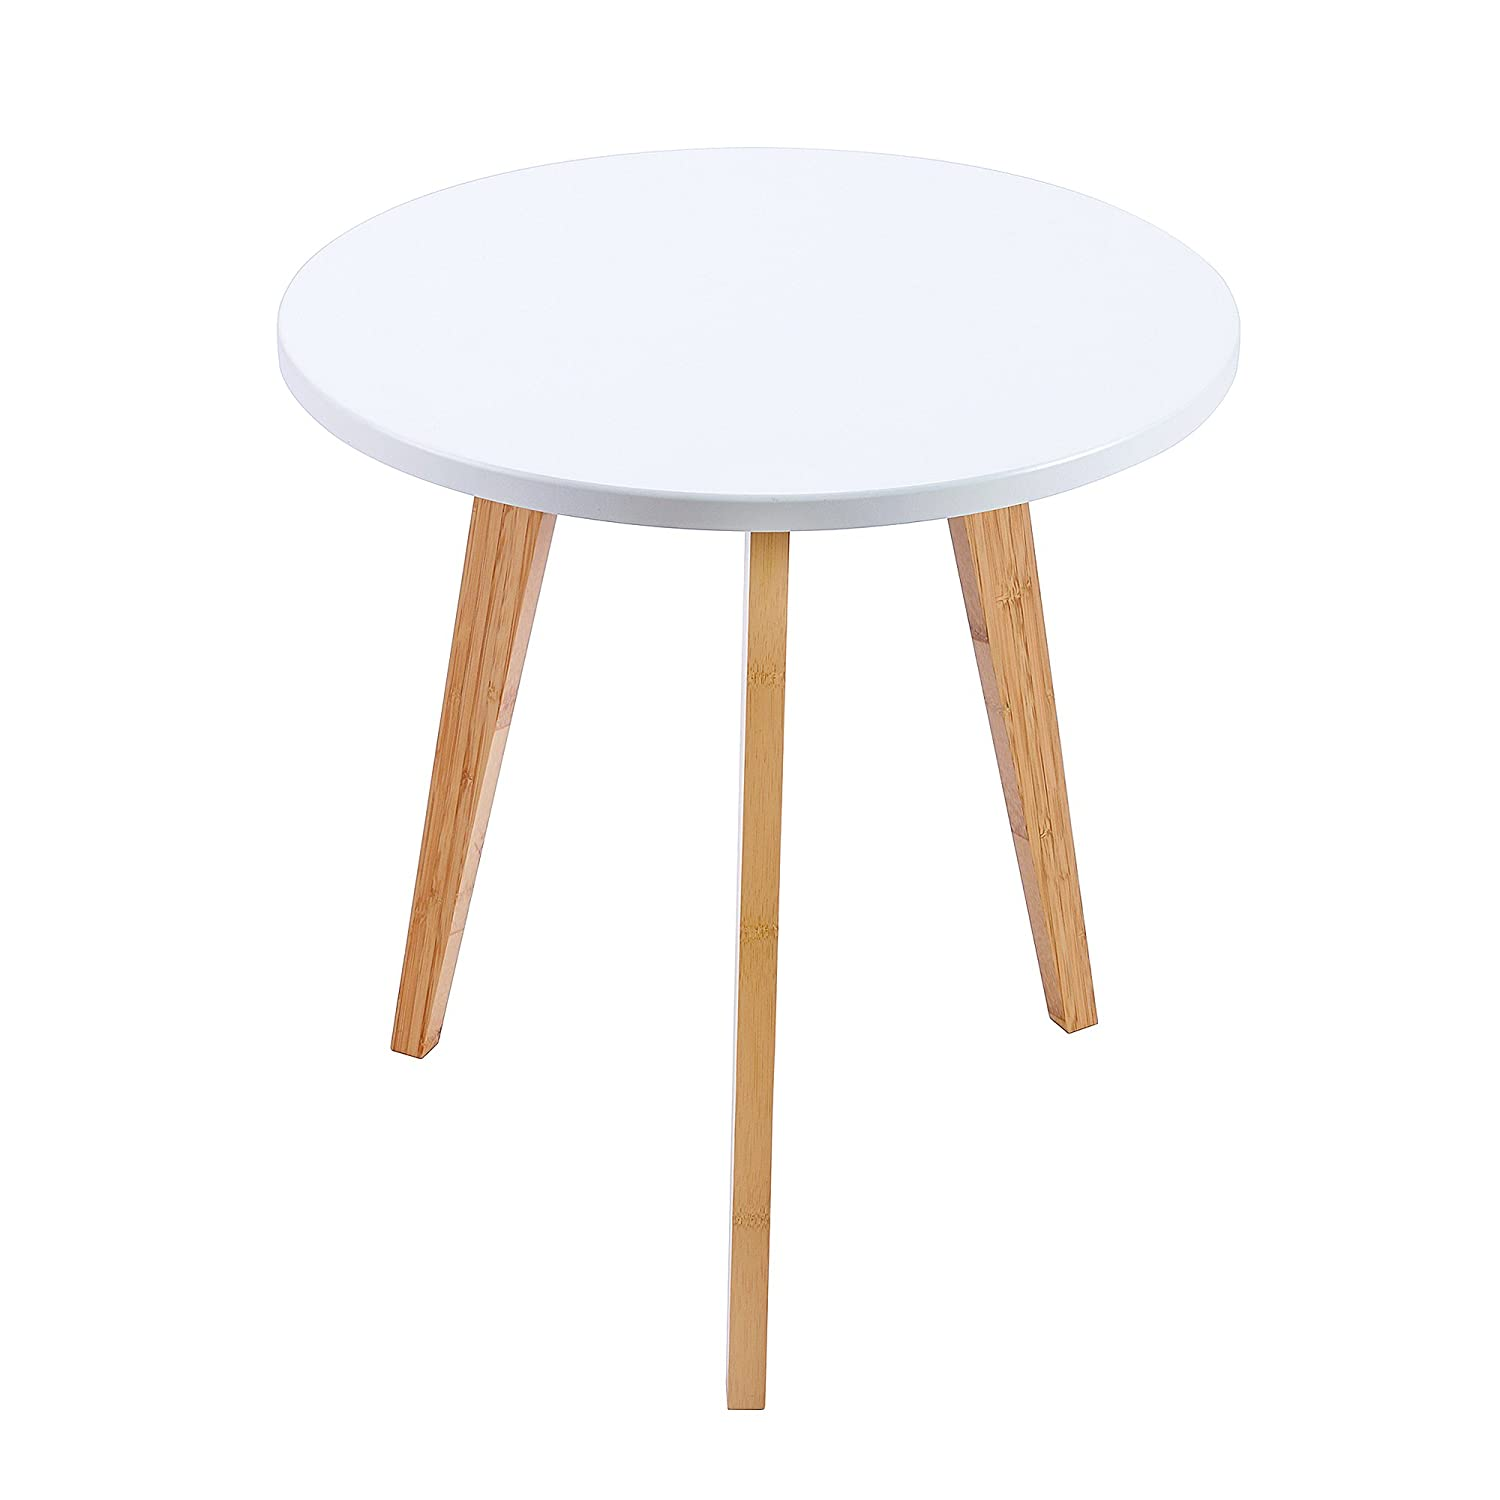 Amazon com wilshine small round end table for small spaces in living room bedroom with white table top and 3 natural bamboo legs kitchen dining